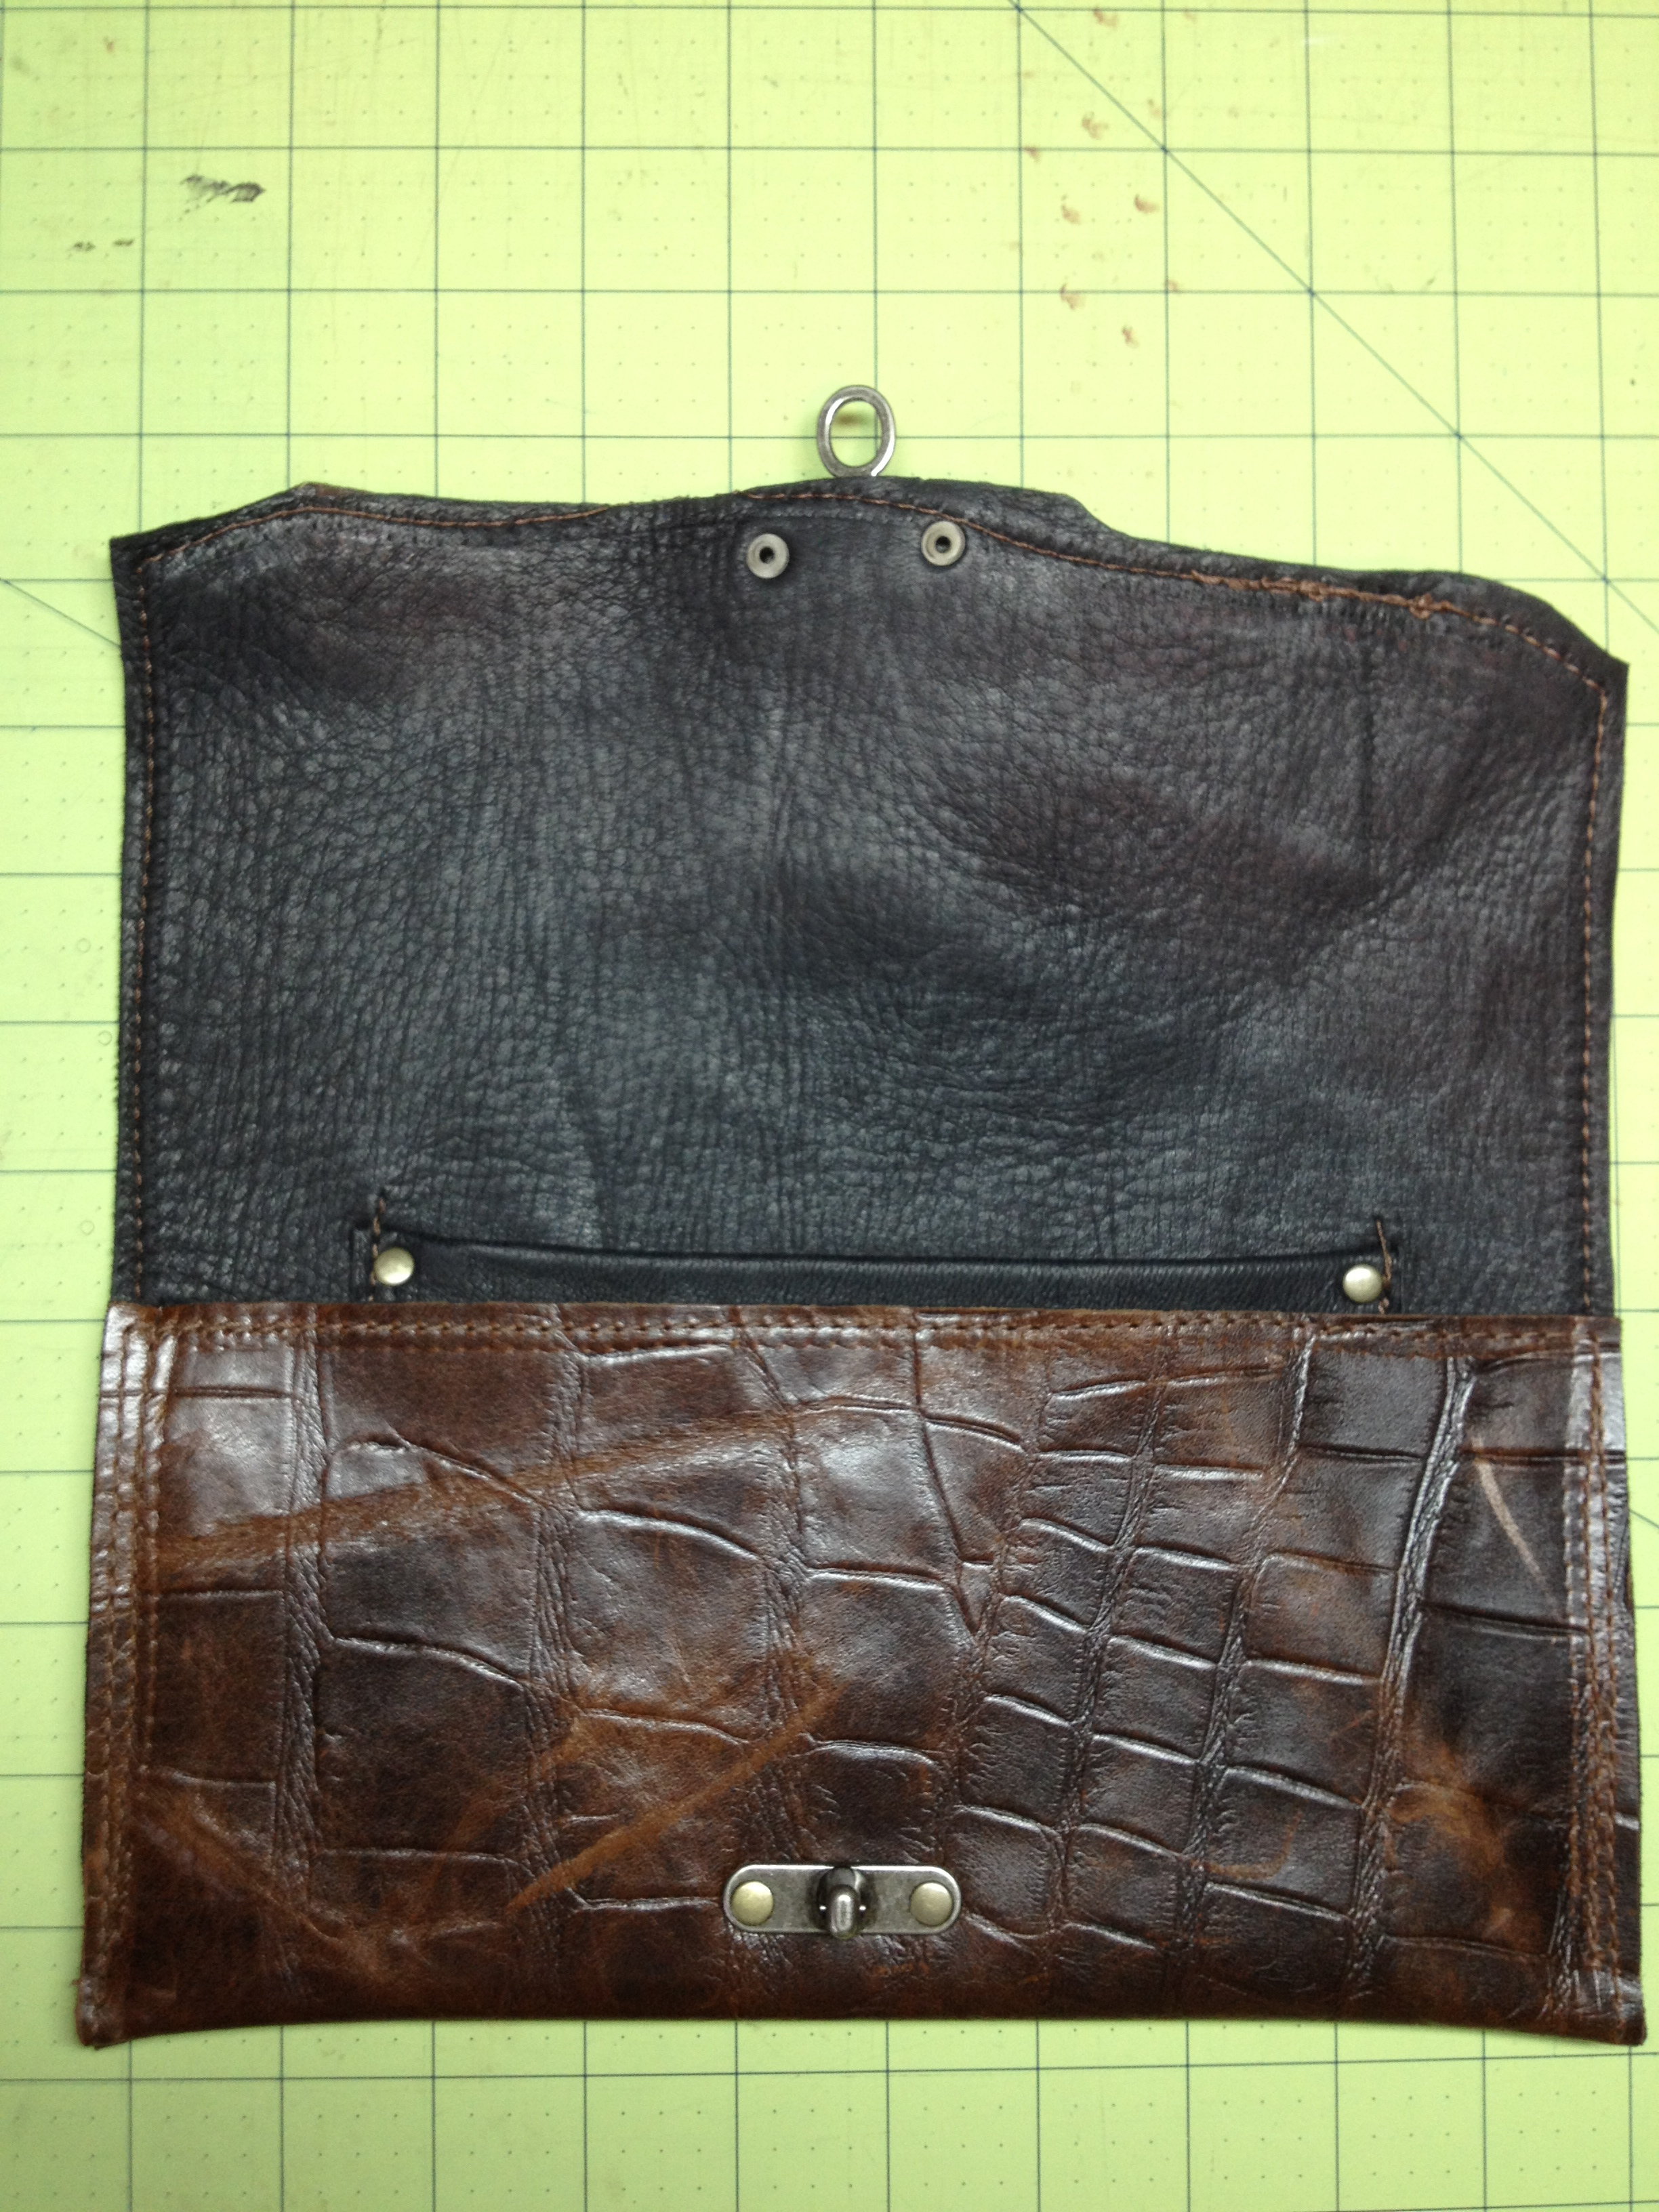 Textured clutch-flap opened